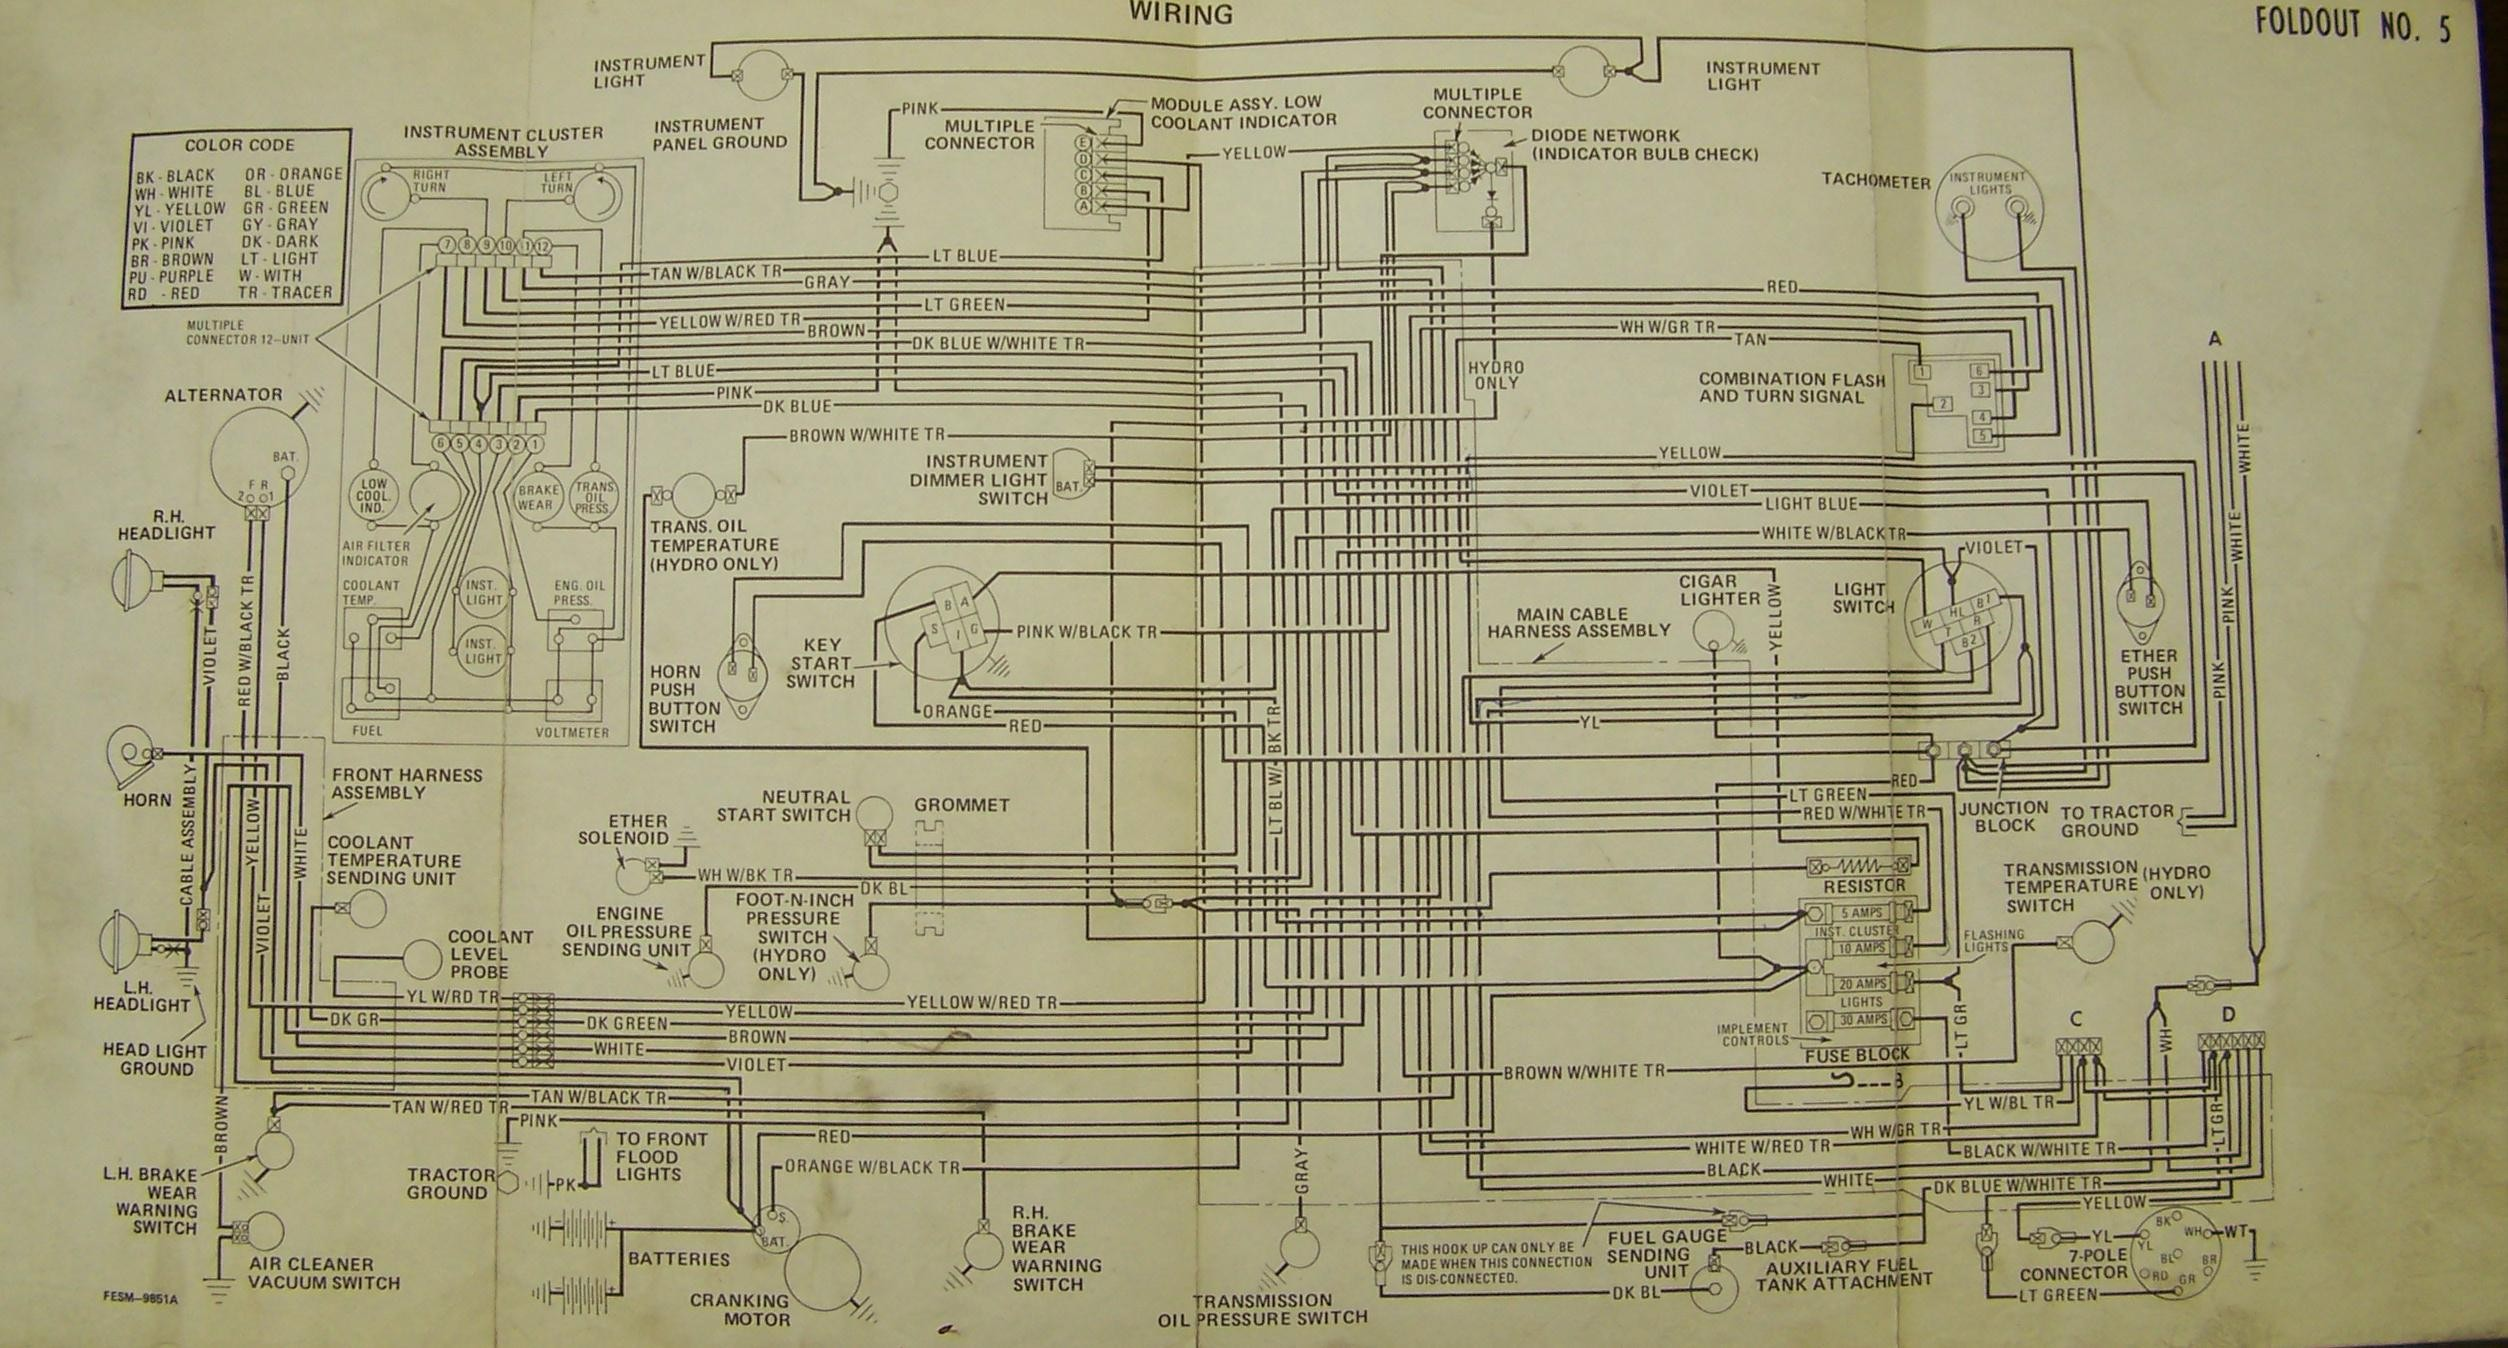 Case Ih Parts Diagram Case Tractor Wiring Diagram Another Blog About Wiring Diagram • Of Case Ih Parts Diagram